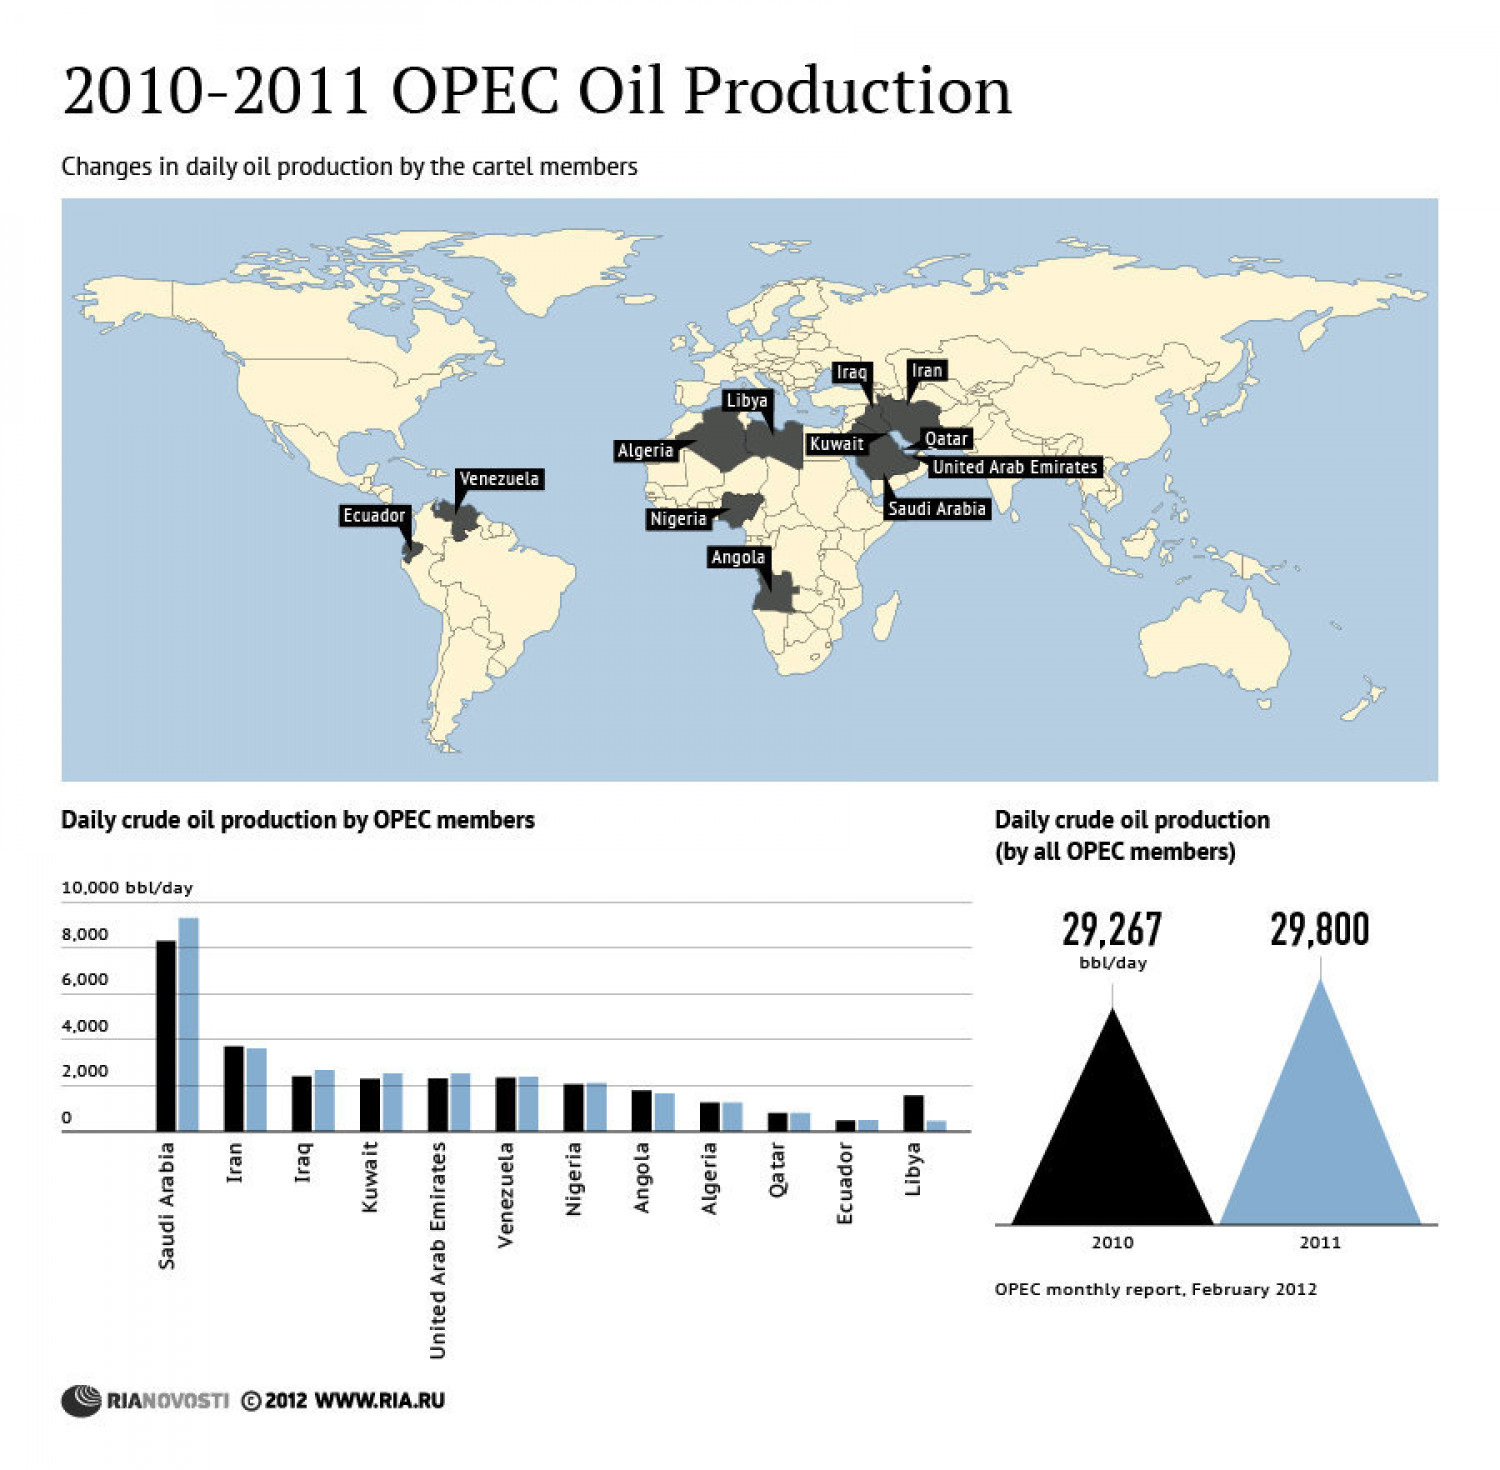 2010-2011 OPEC Oil Production Infographic